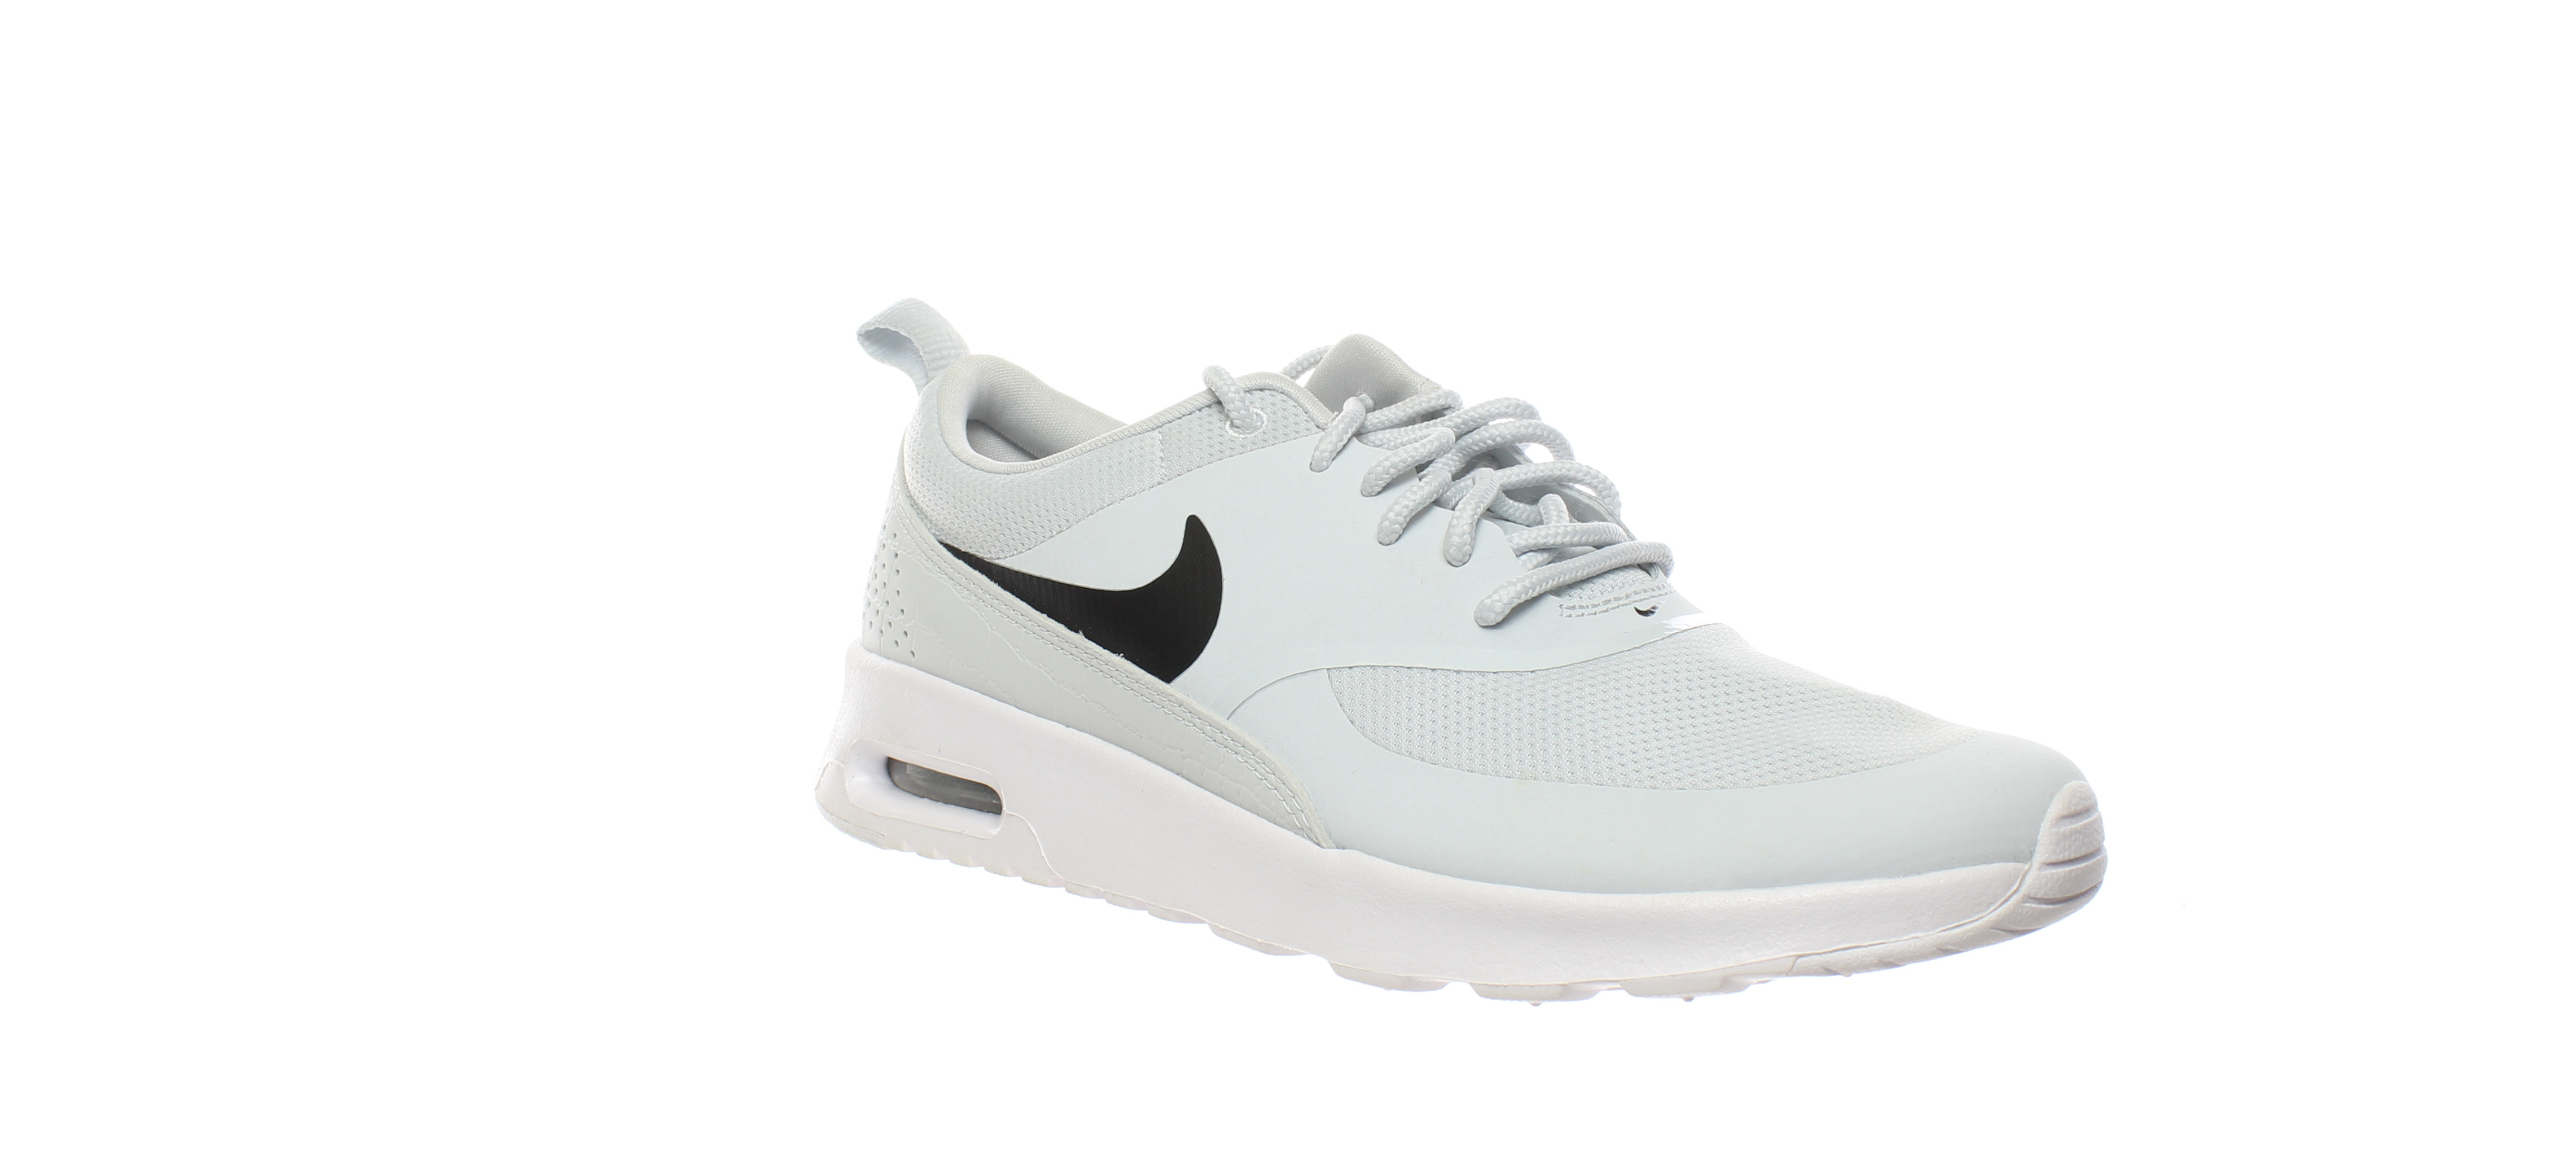 Nike Womens Air Max Thea Gray Running Shoes Size 7.5 (824193)